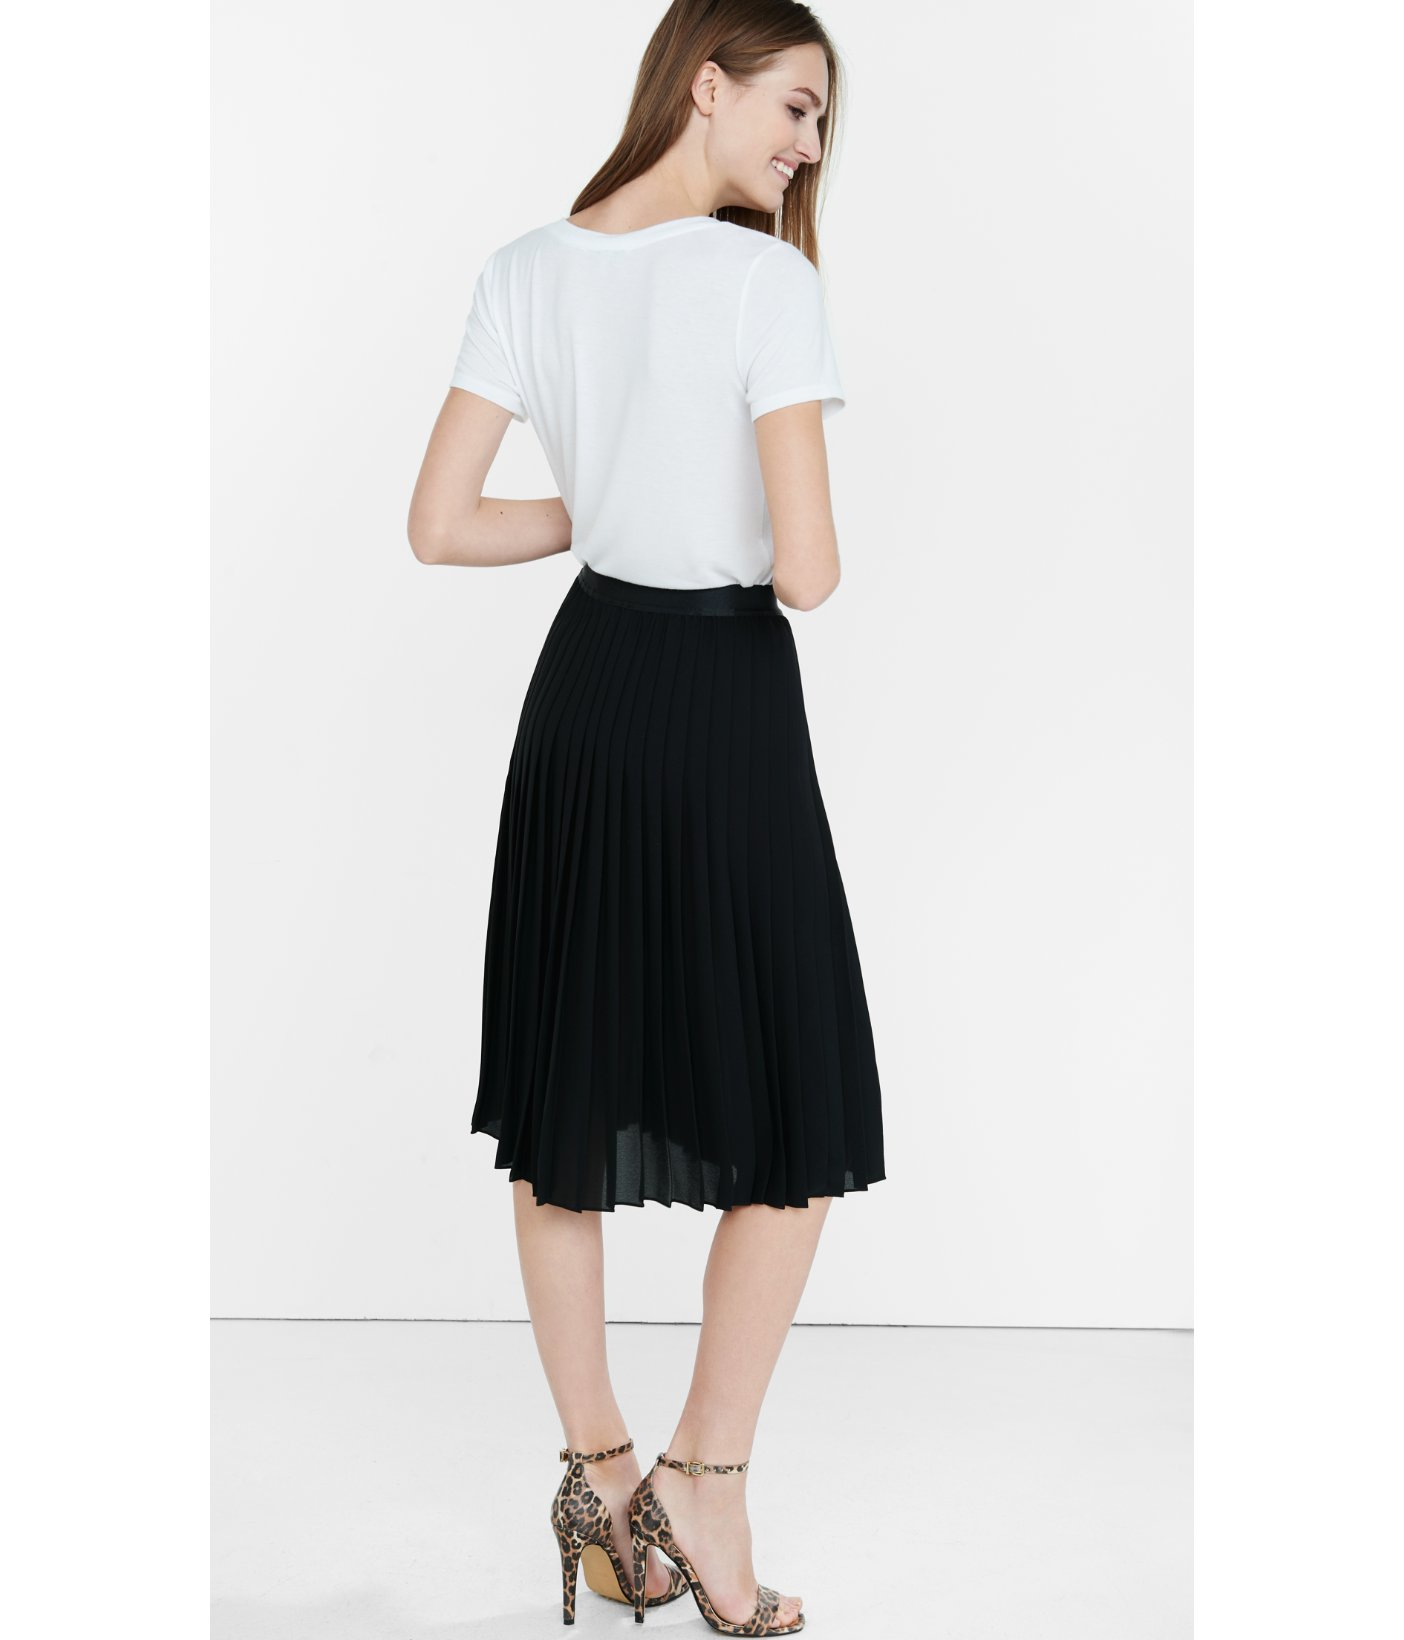 Express Black High Waisted Pleated Midi Skirt in Black | Lyst